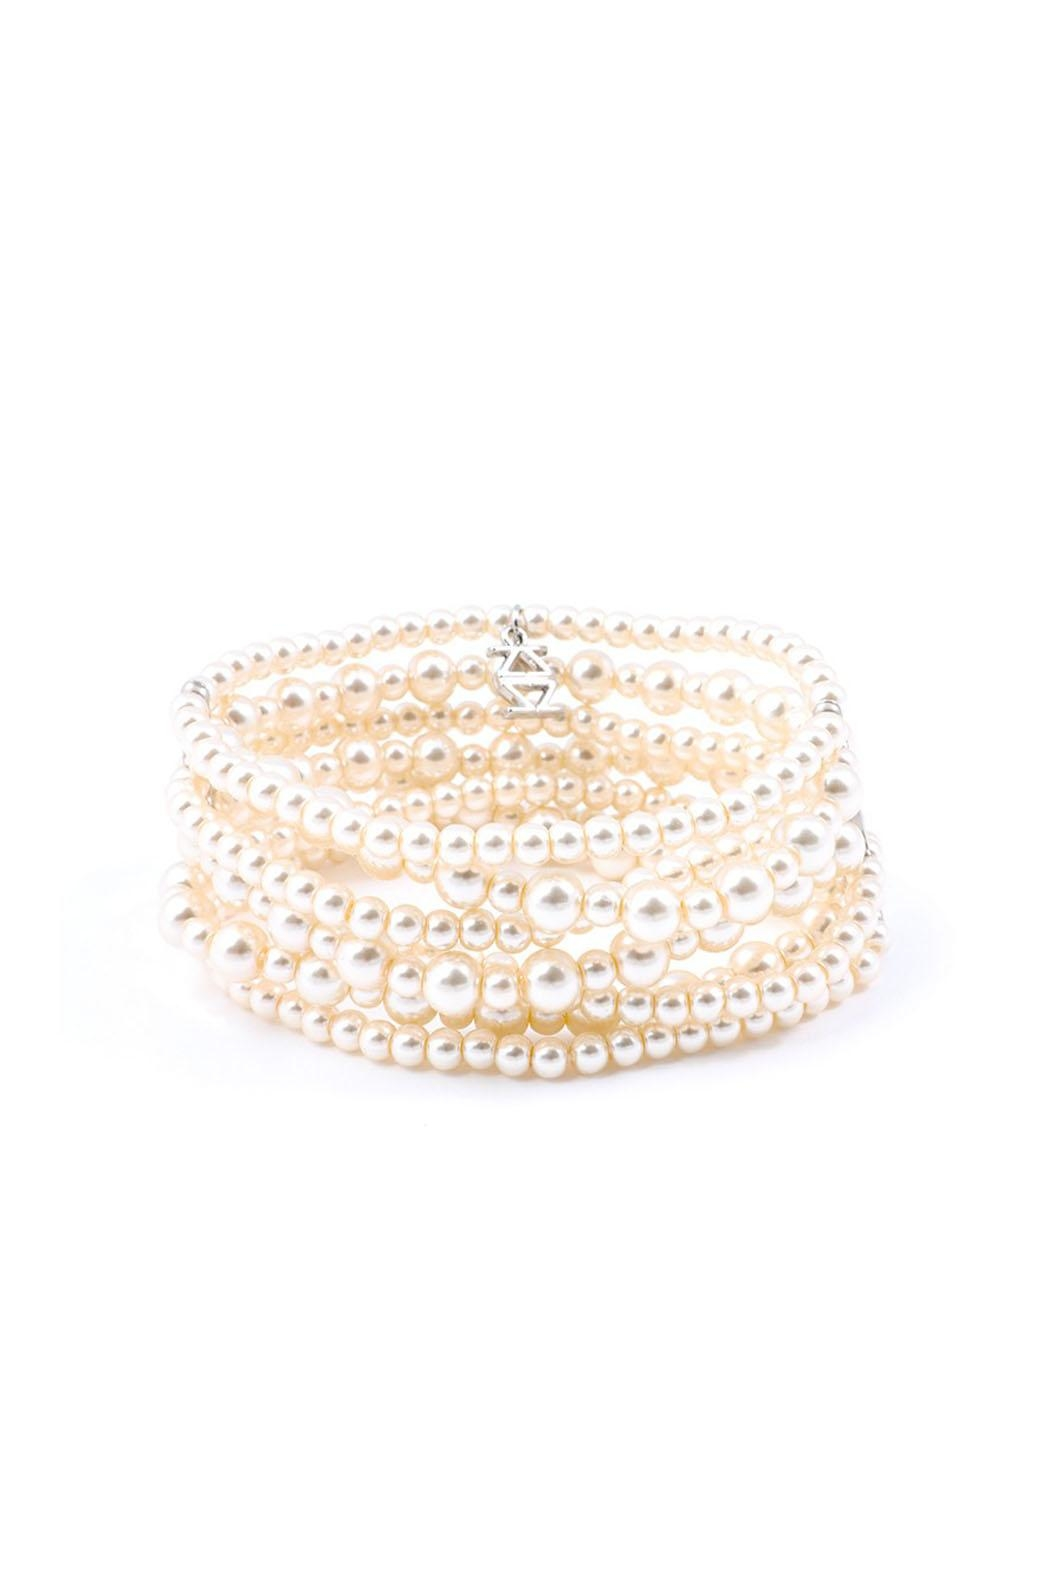 Wild Lilies Jewelry  Pearl Layered Bracelet - Main Image